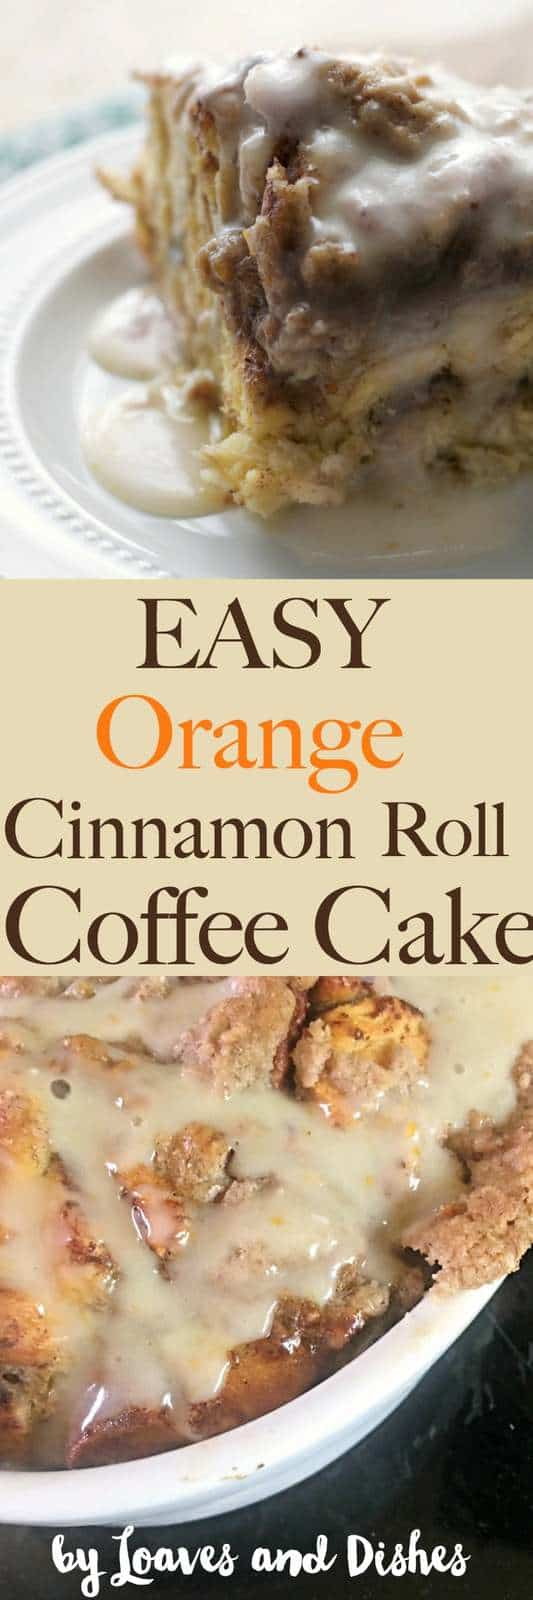 This EASY ORANGE CINNAMON ROLL COFFEE CAKE is simple using ingredients you already have in your kitchen like cinnamon, sugar, and pecans. Like the Pioneer Woman makes. Short total time. Easy ingredients